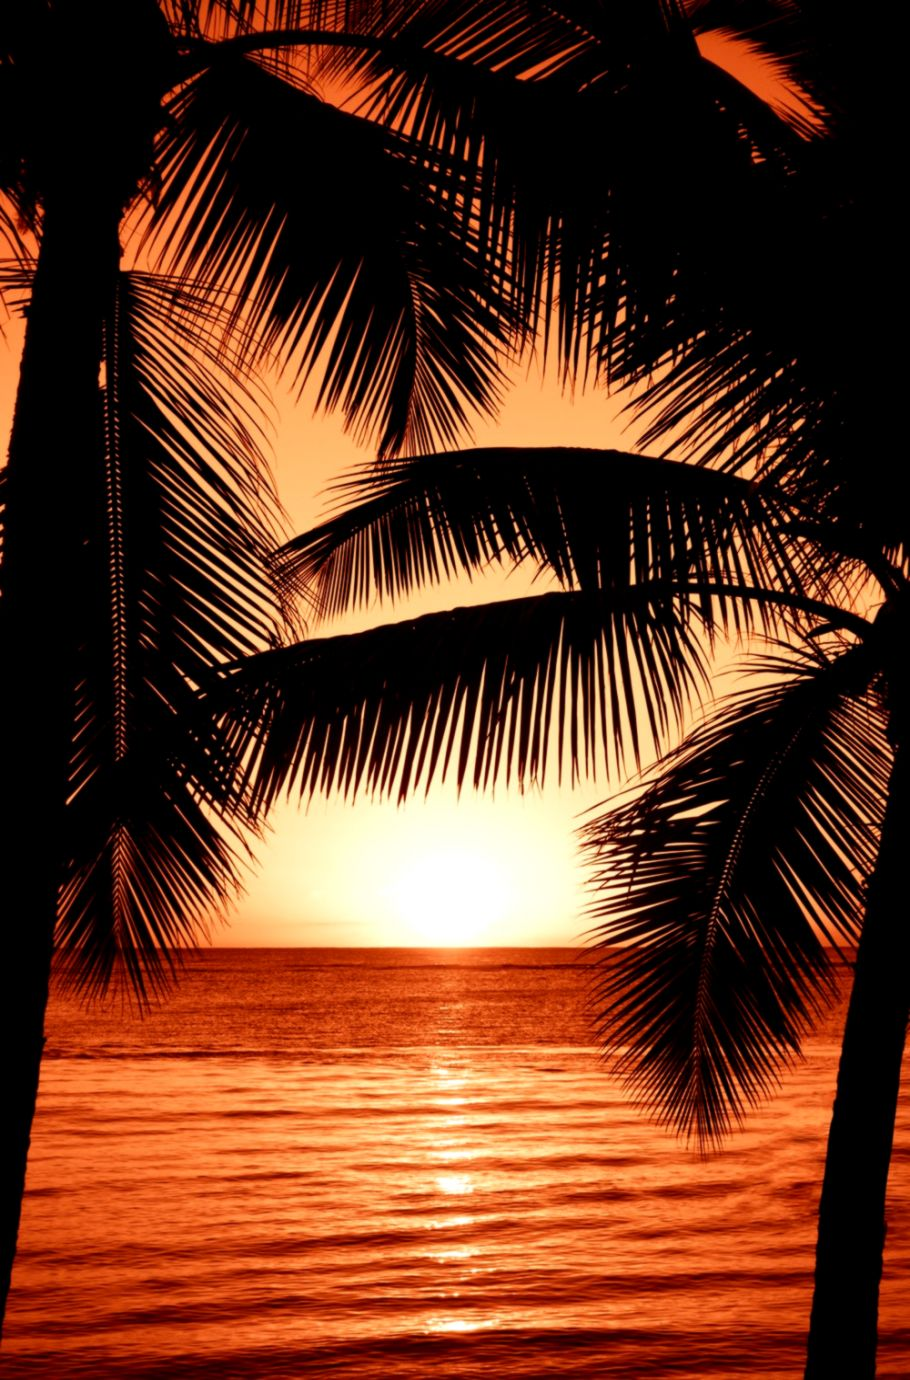 500 Wallpaper Pictures Download Free Hd Images On Unsplash - Sunset With Palm Trees Painting , HD Wallpaper & Backgrounds